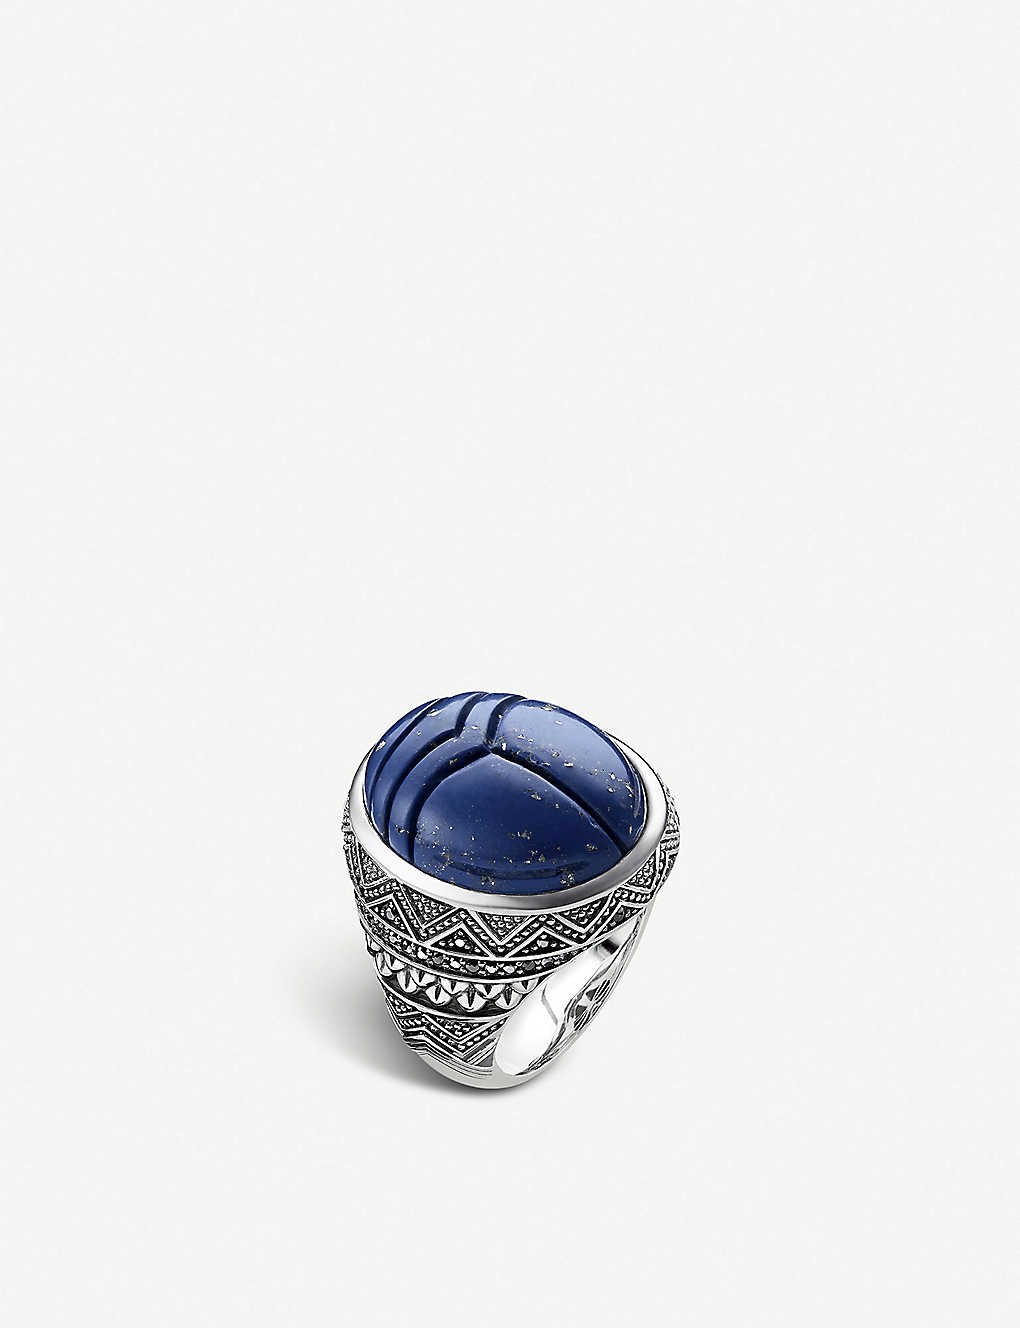 THOMAS SABO: Rebel at Heart scarab beetle silver signet ring